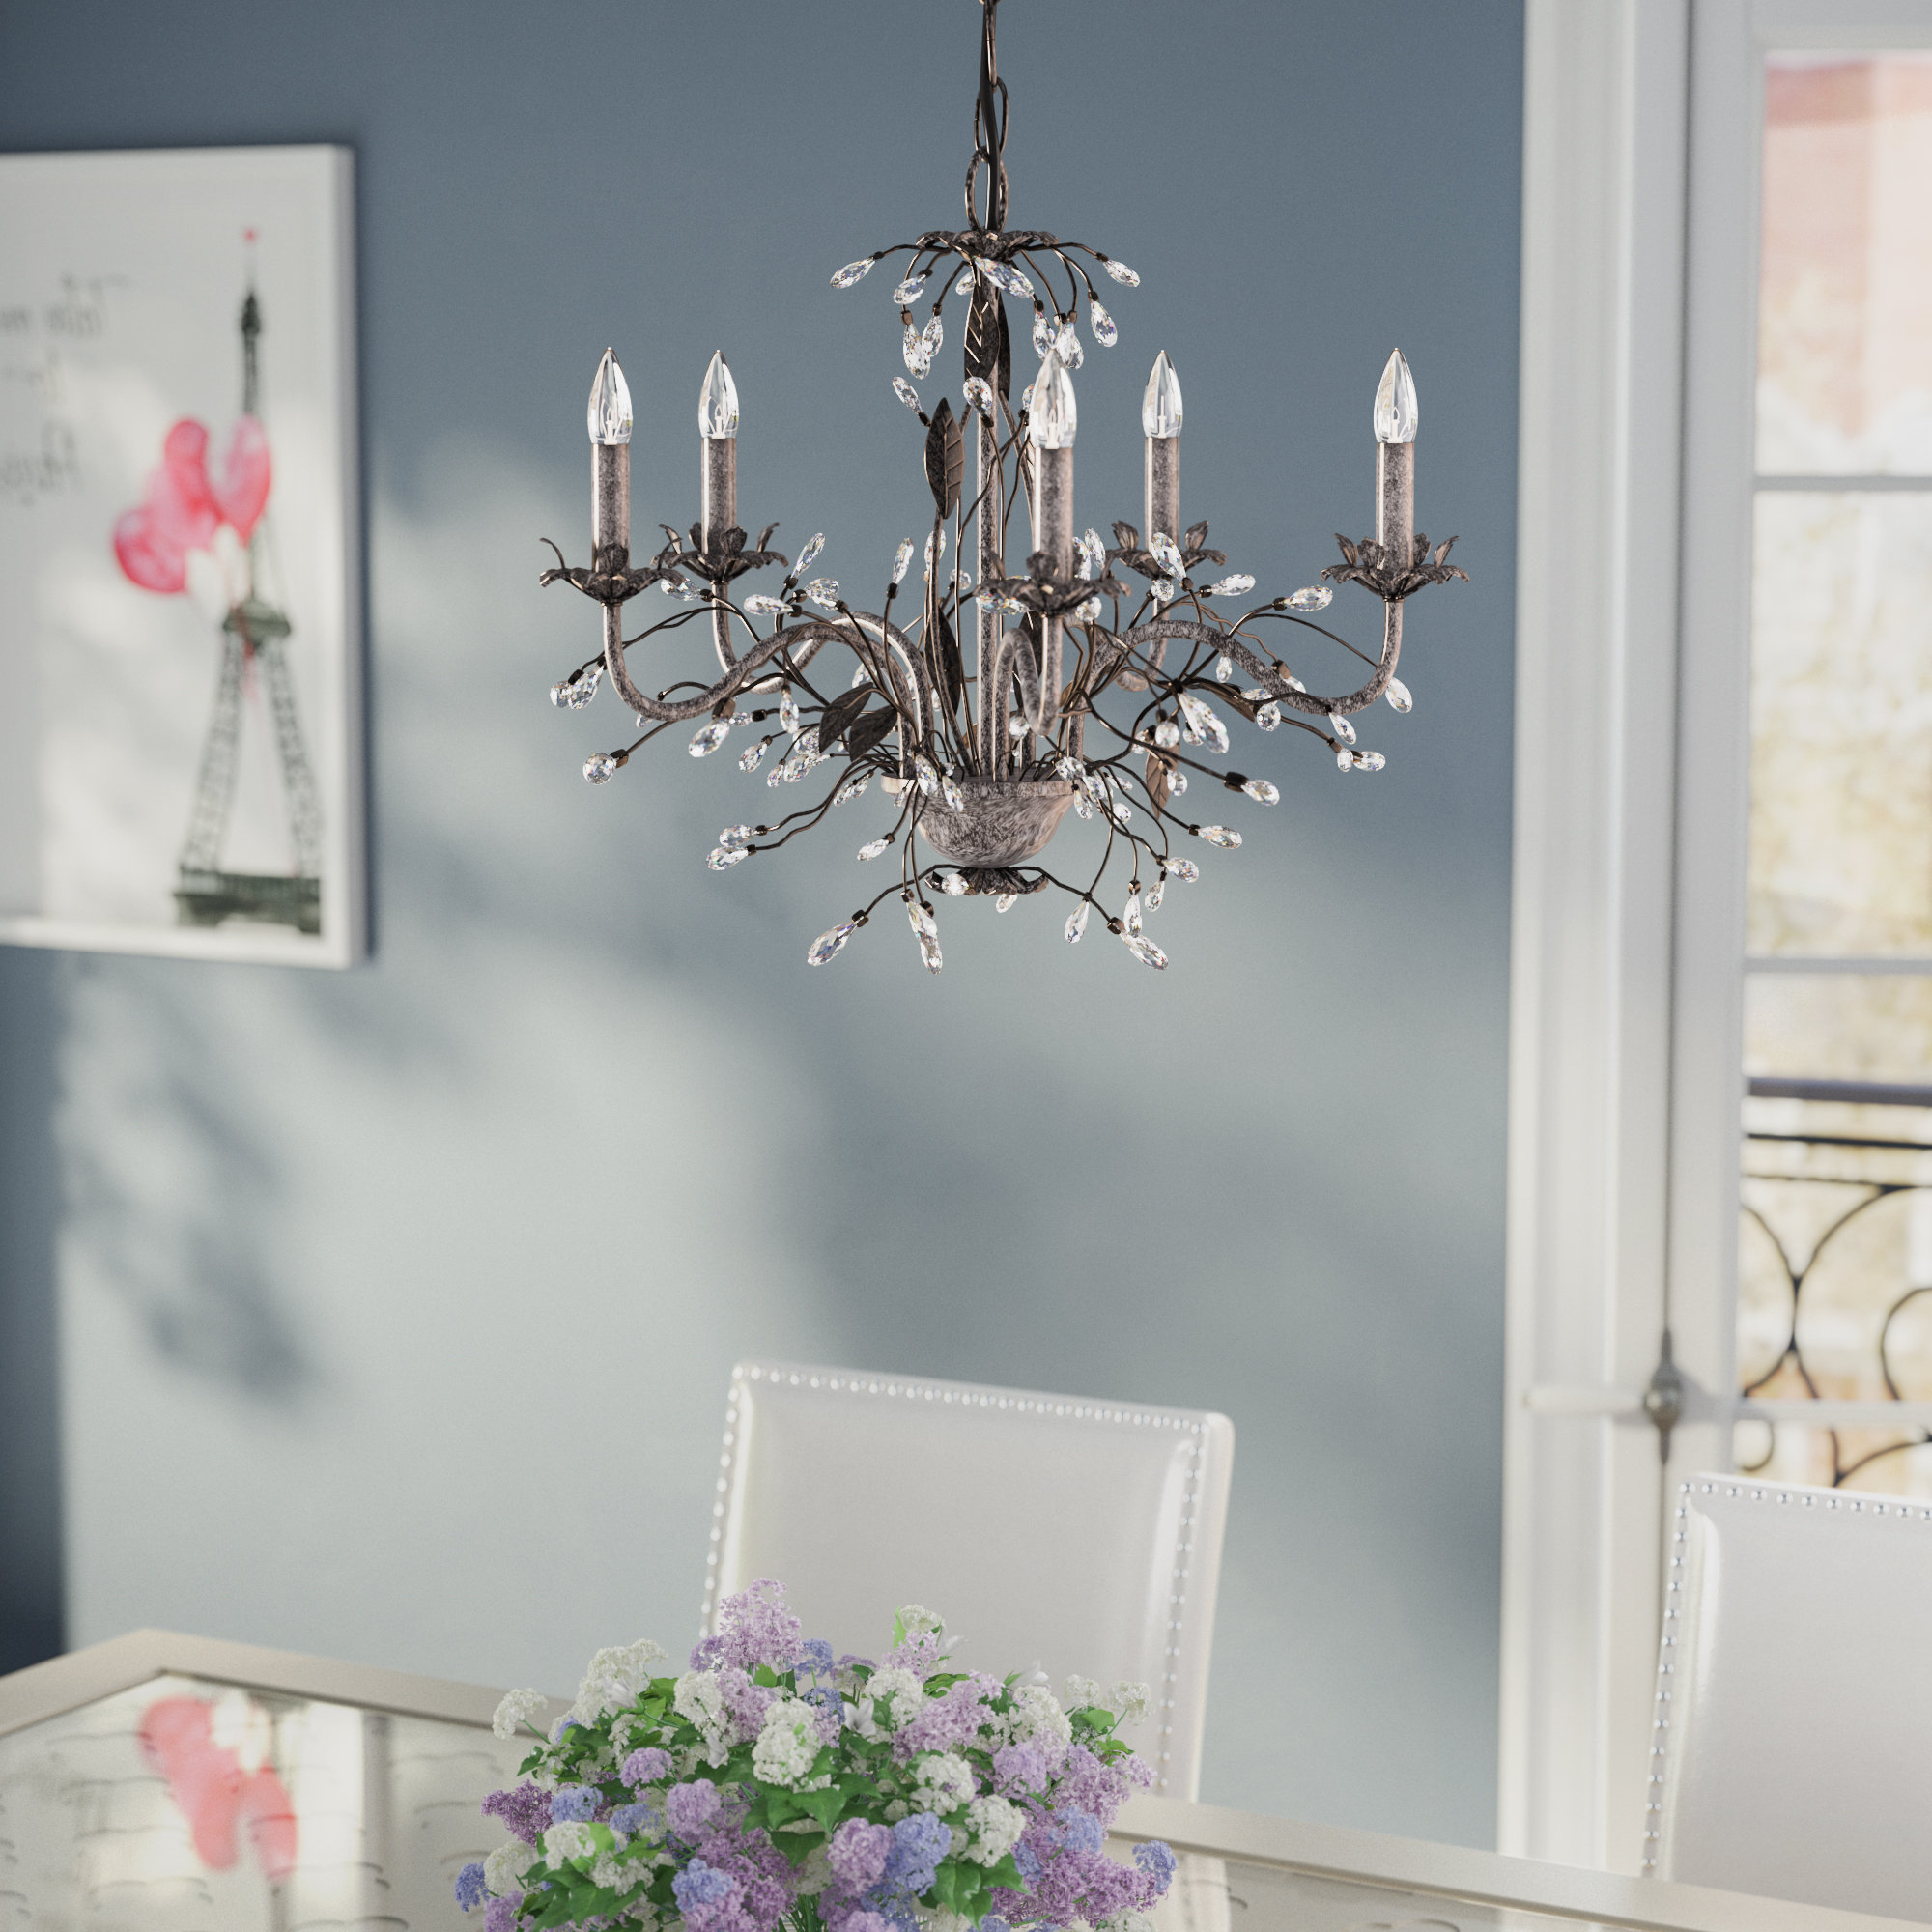 Hesse 5 Light Candle Style Chandelier Pertaining To Well Liked Blanchette 5 Light Candle Style Chandeliers (Gallery 12 of 25)